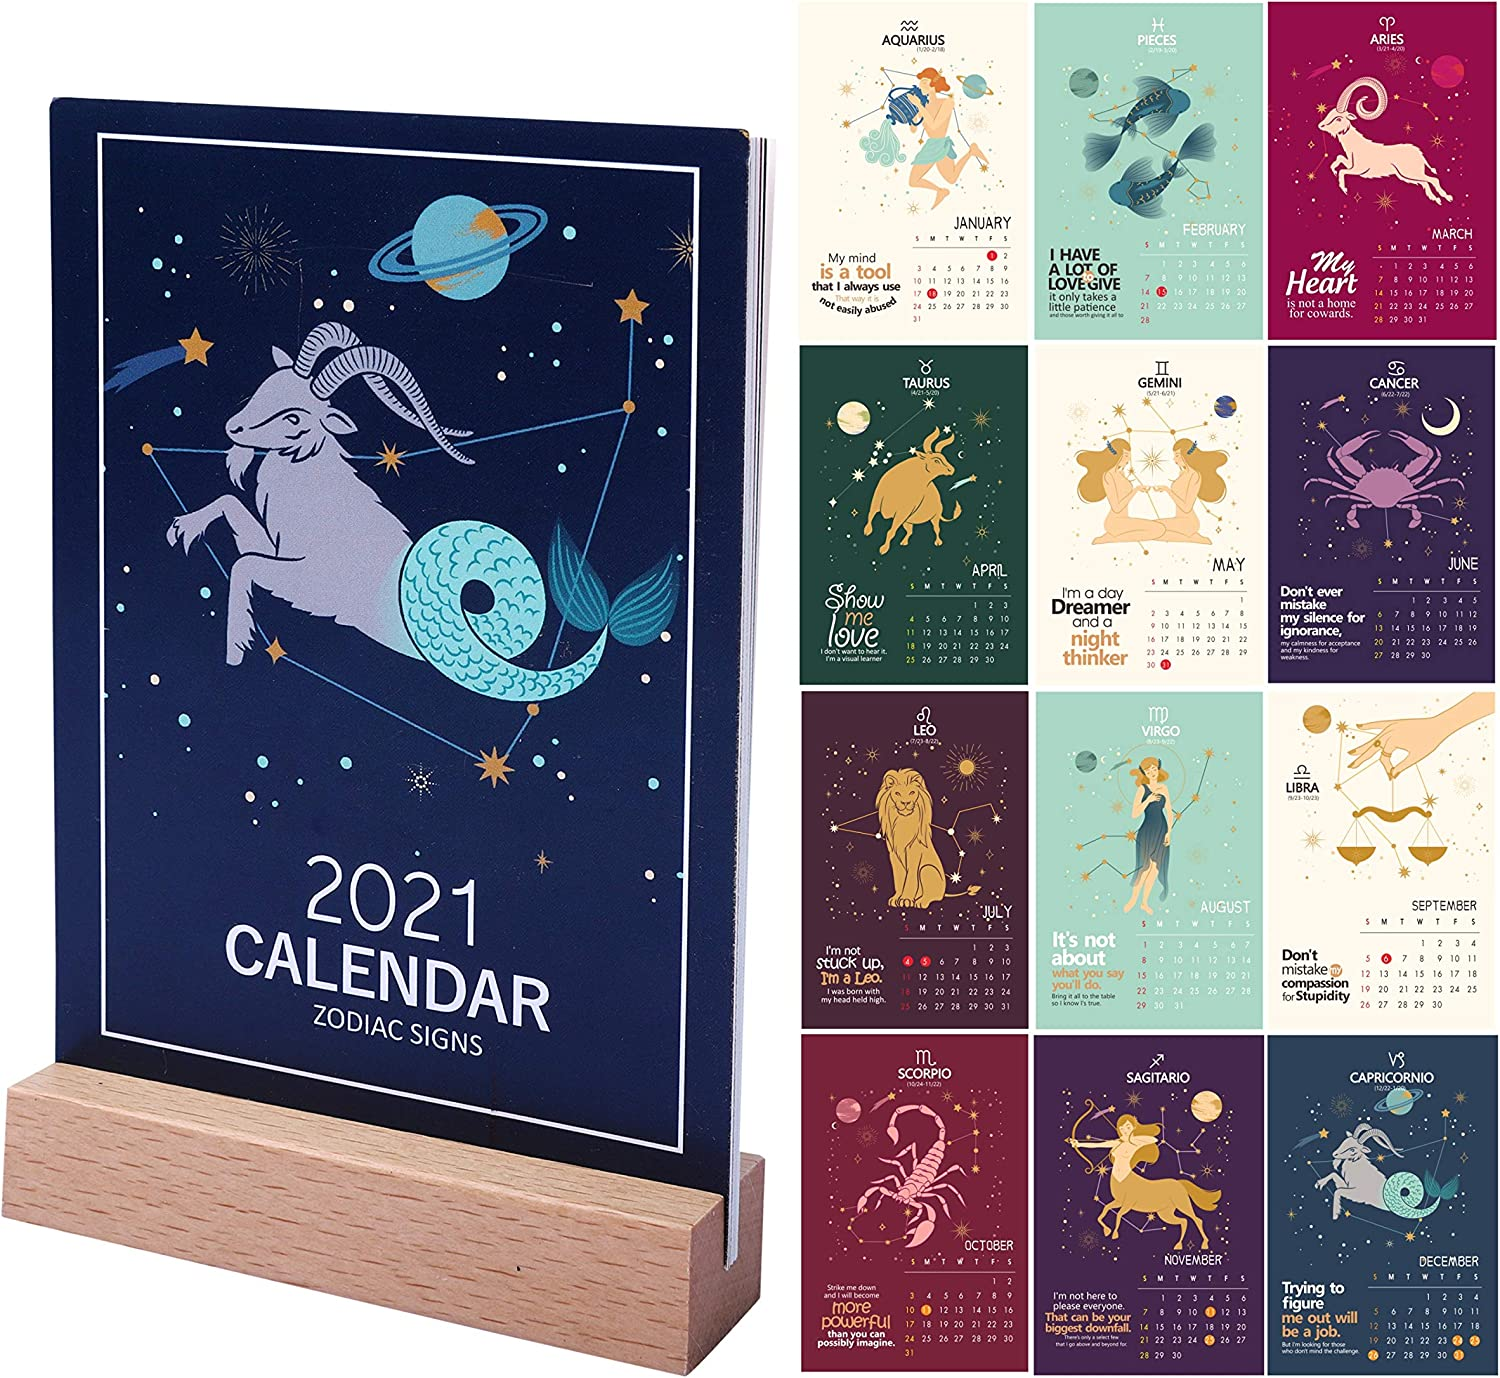 2021 Desk Calendar, 4 x 6 Inch Small Mini Desktop Calendar, odiac Calendar with Wood Stan, Monthly Calendar with Easel Stand, Gift for Her, Colorful Home Office Decor